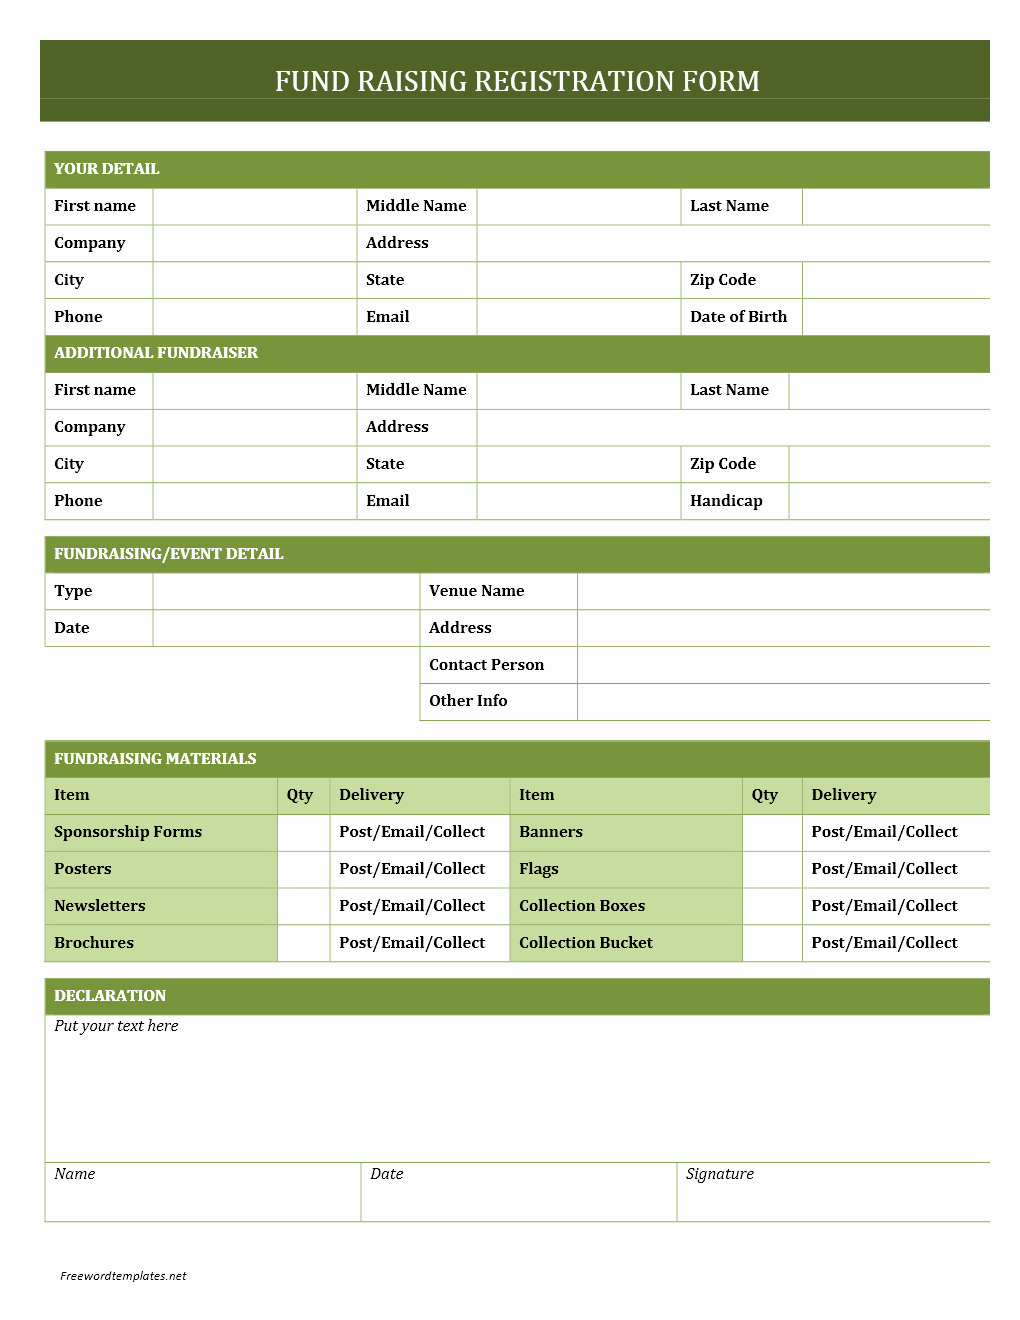 Free Registration forms Template Beautiful Fundraising Registration form